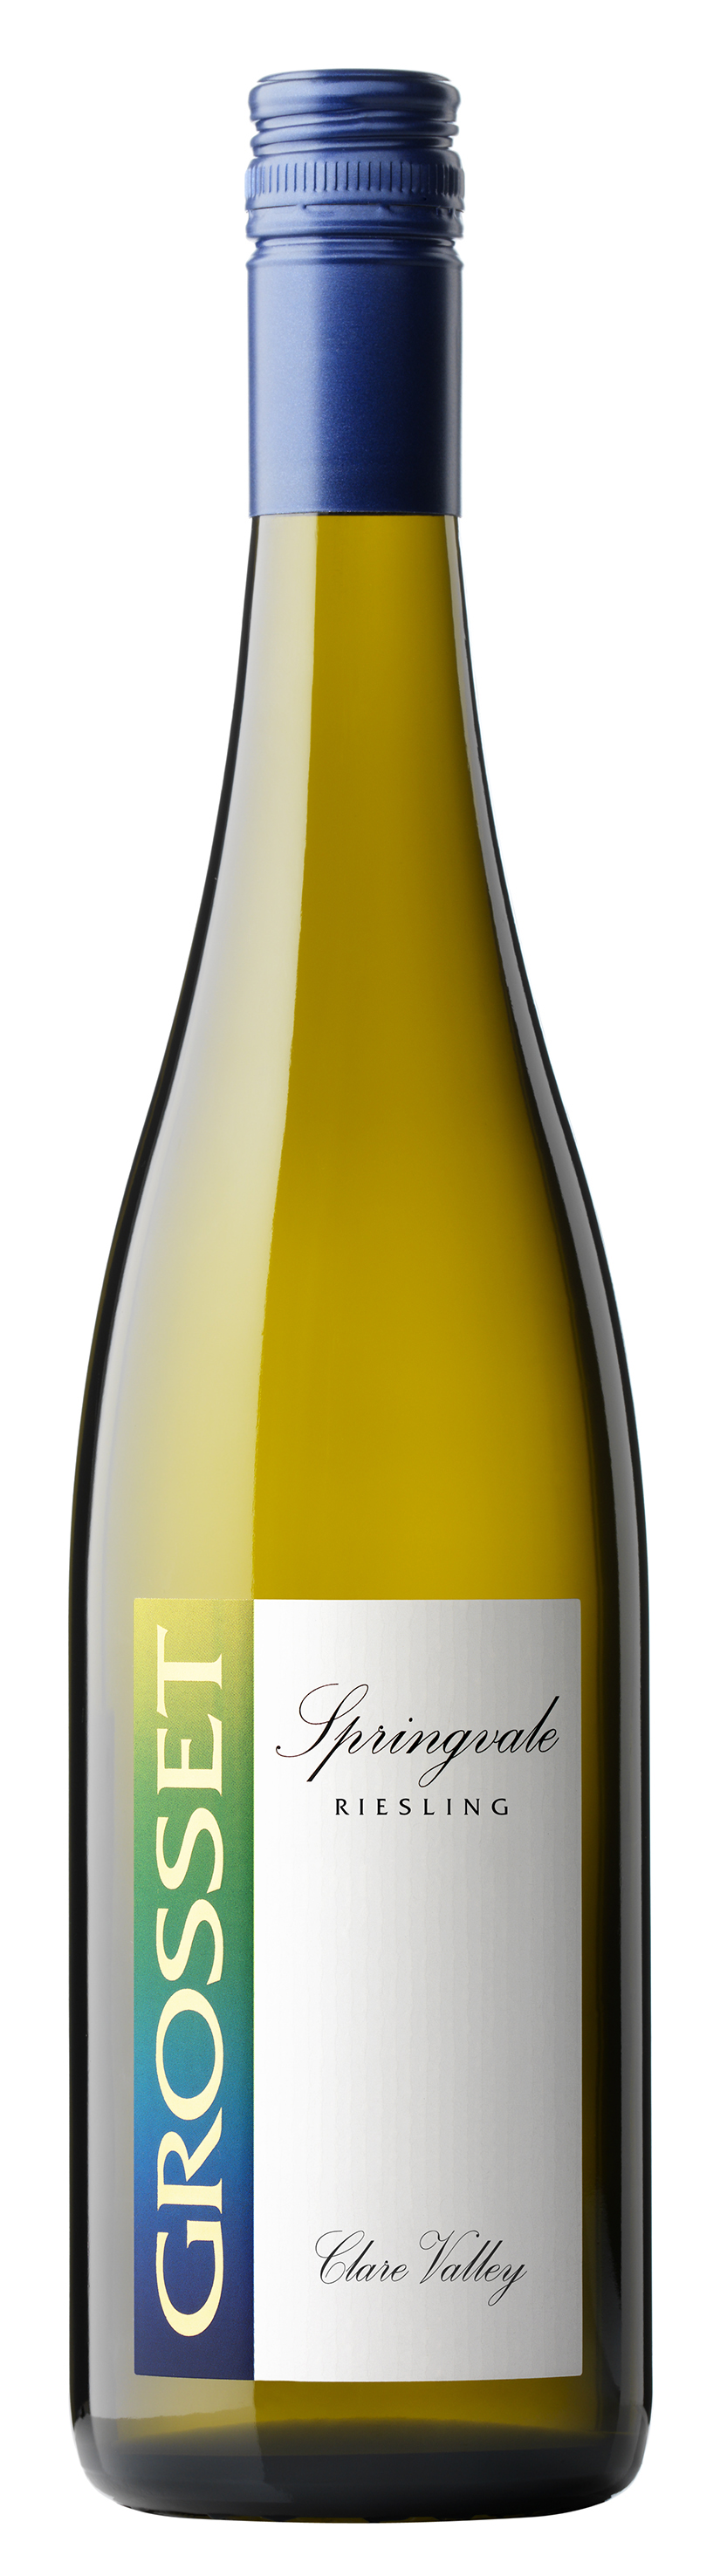 Grosset, 'Springvale' Clare Valley Riesling 2016